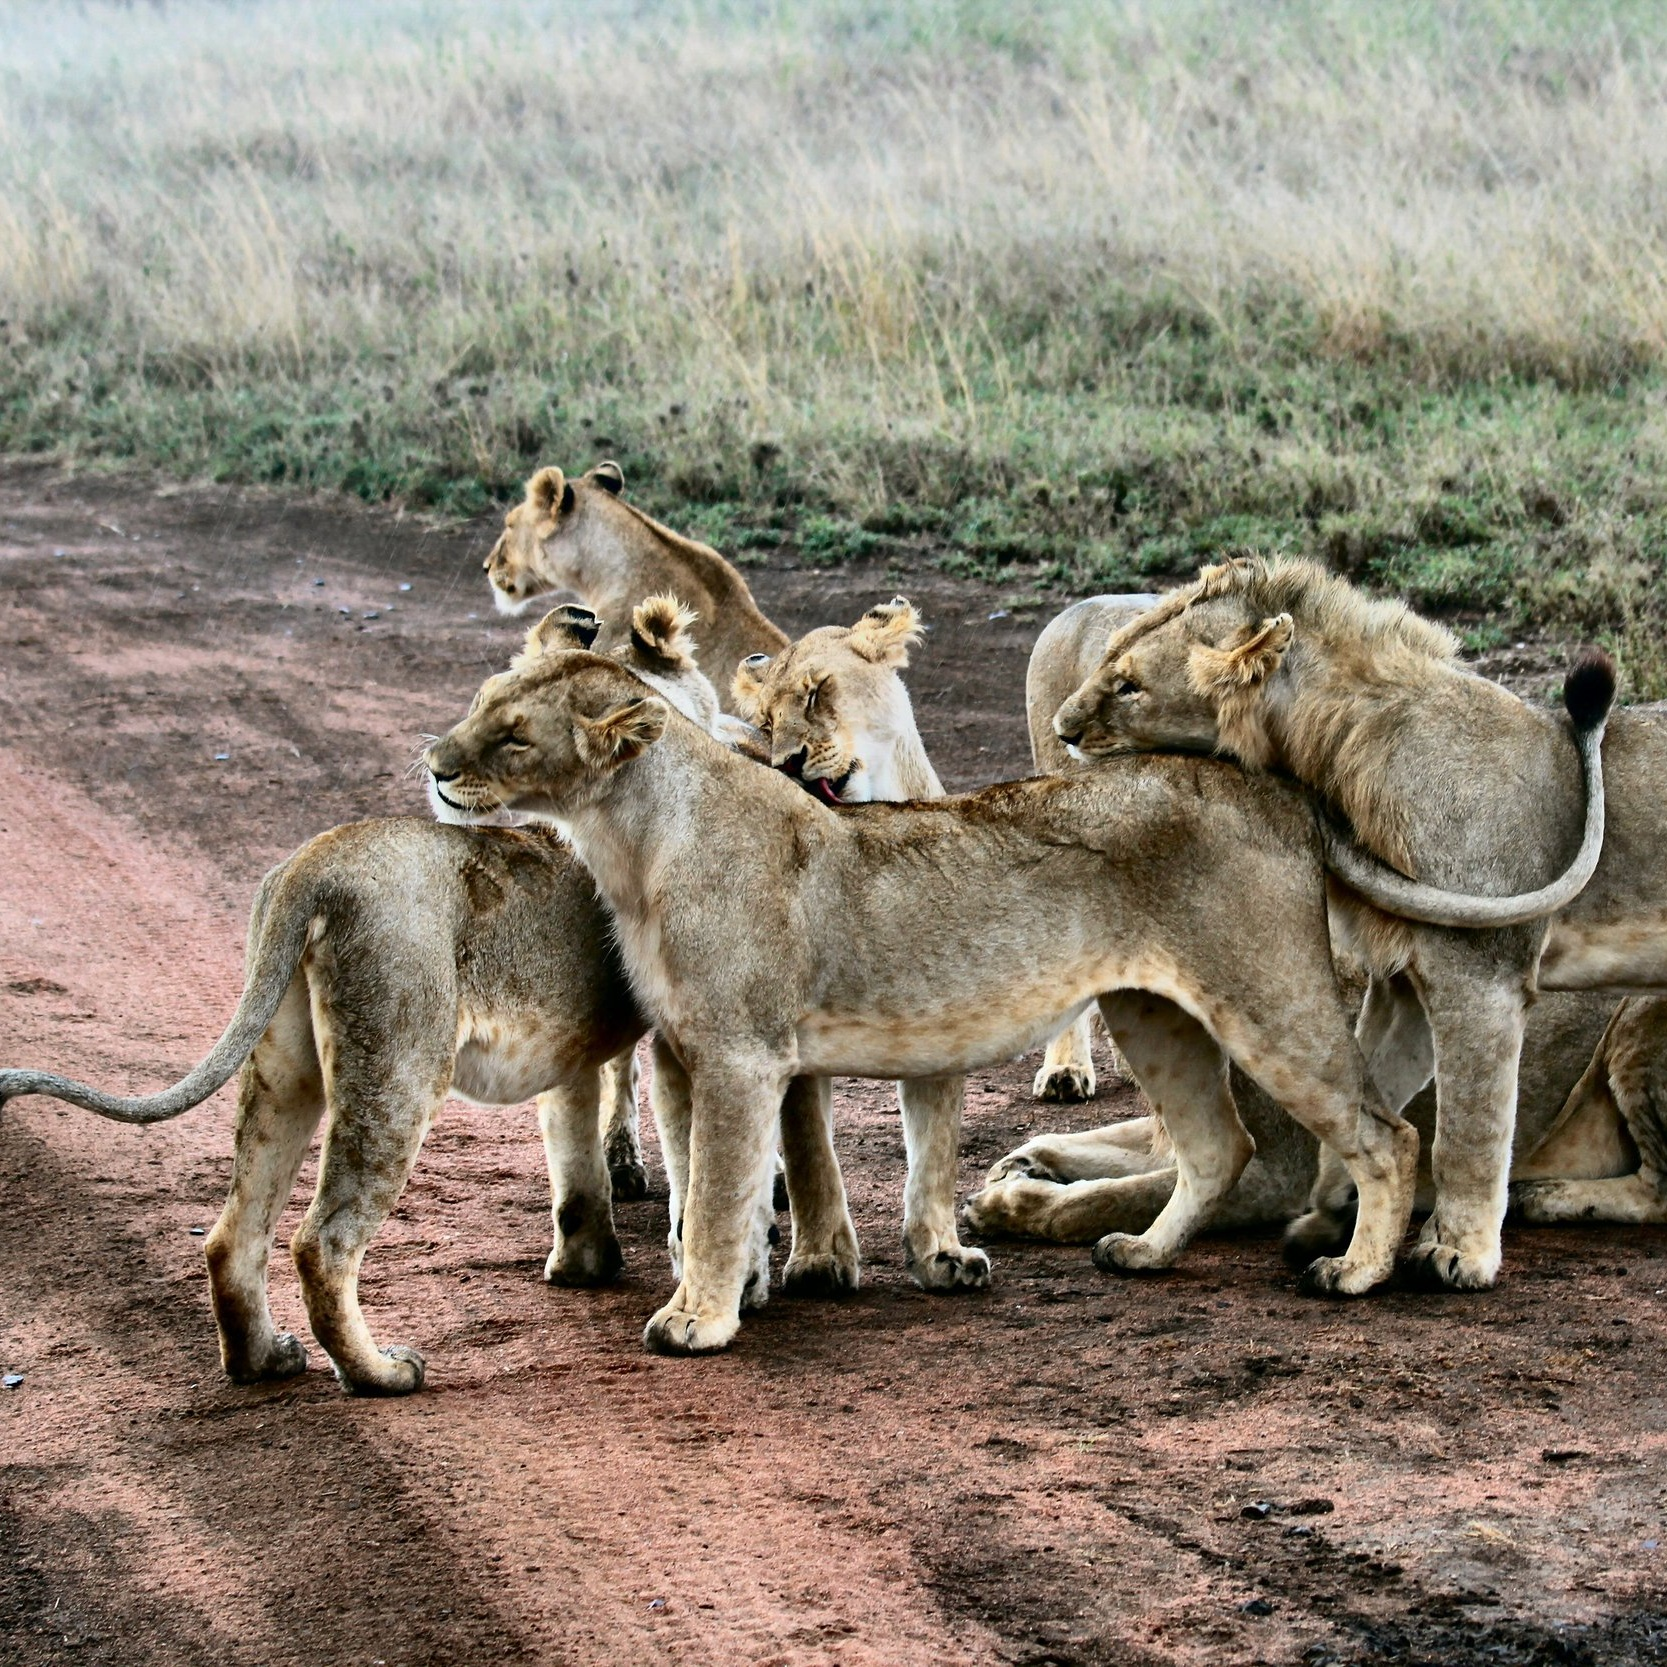 Safari and Wild Life